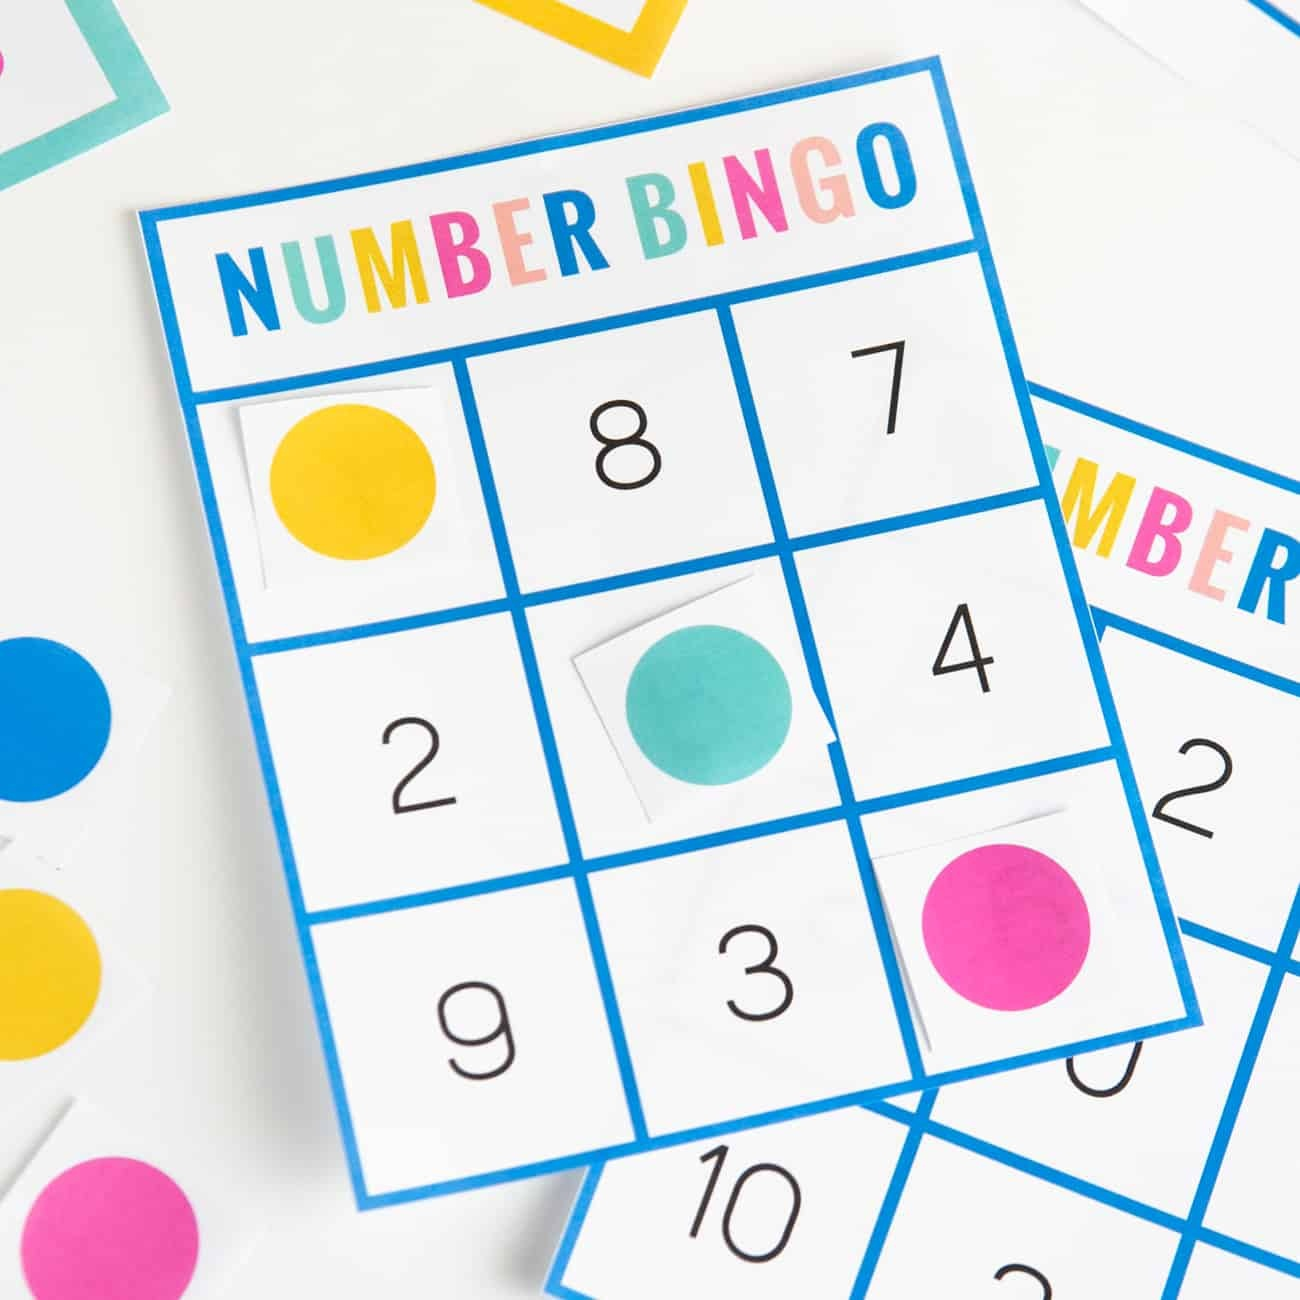 Free Printable Number Bingo - Design Eat Repeat - Free Printable Bingo Chips